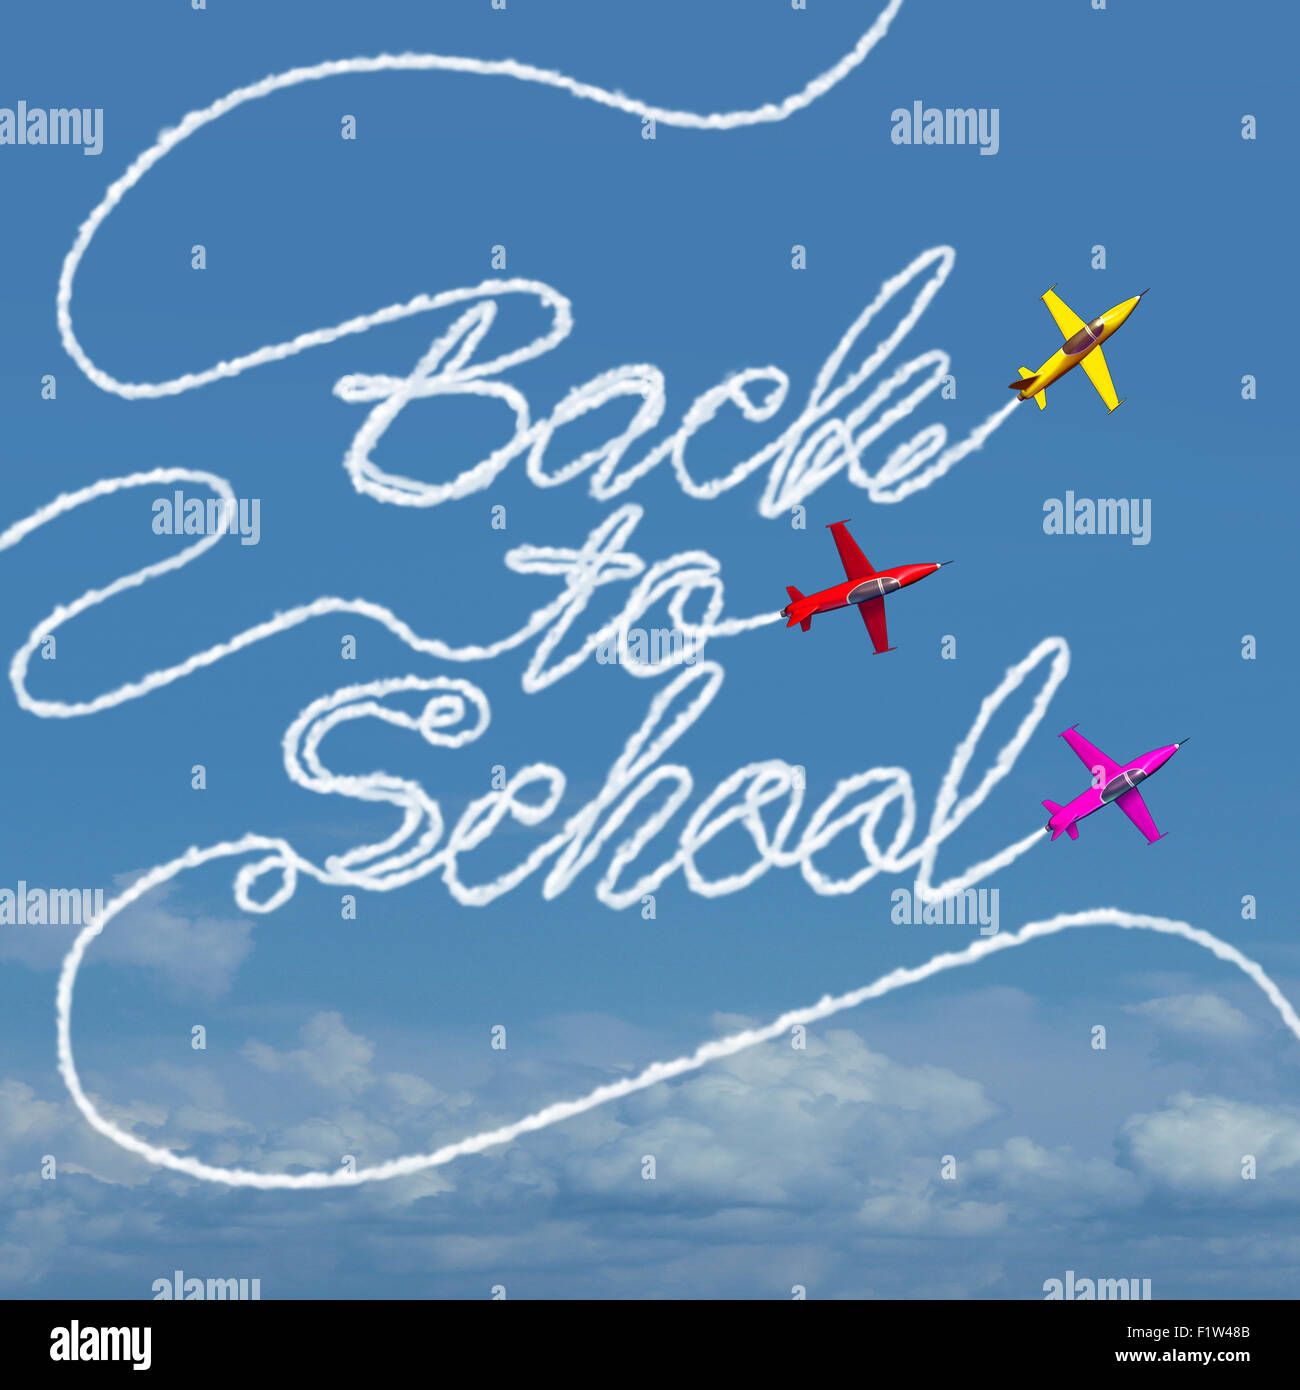 Back to school celebration symbol and taking flight concept as a group of airplanes creating a smoke trail shaped - Stock Image